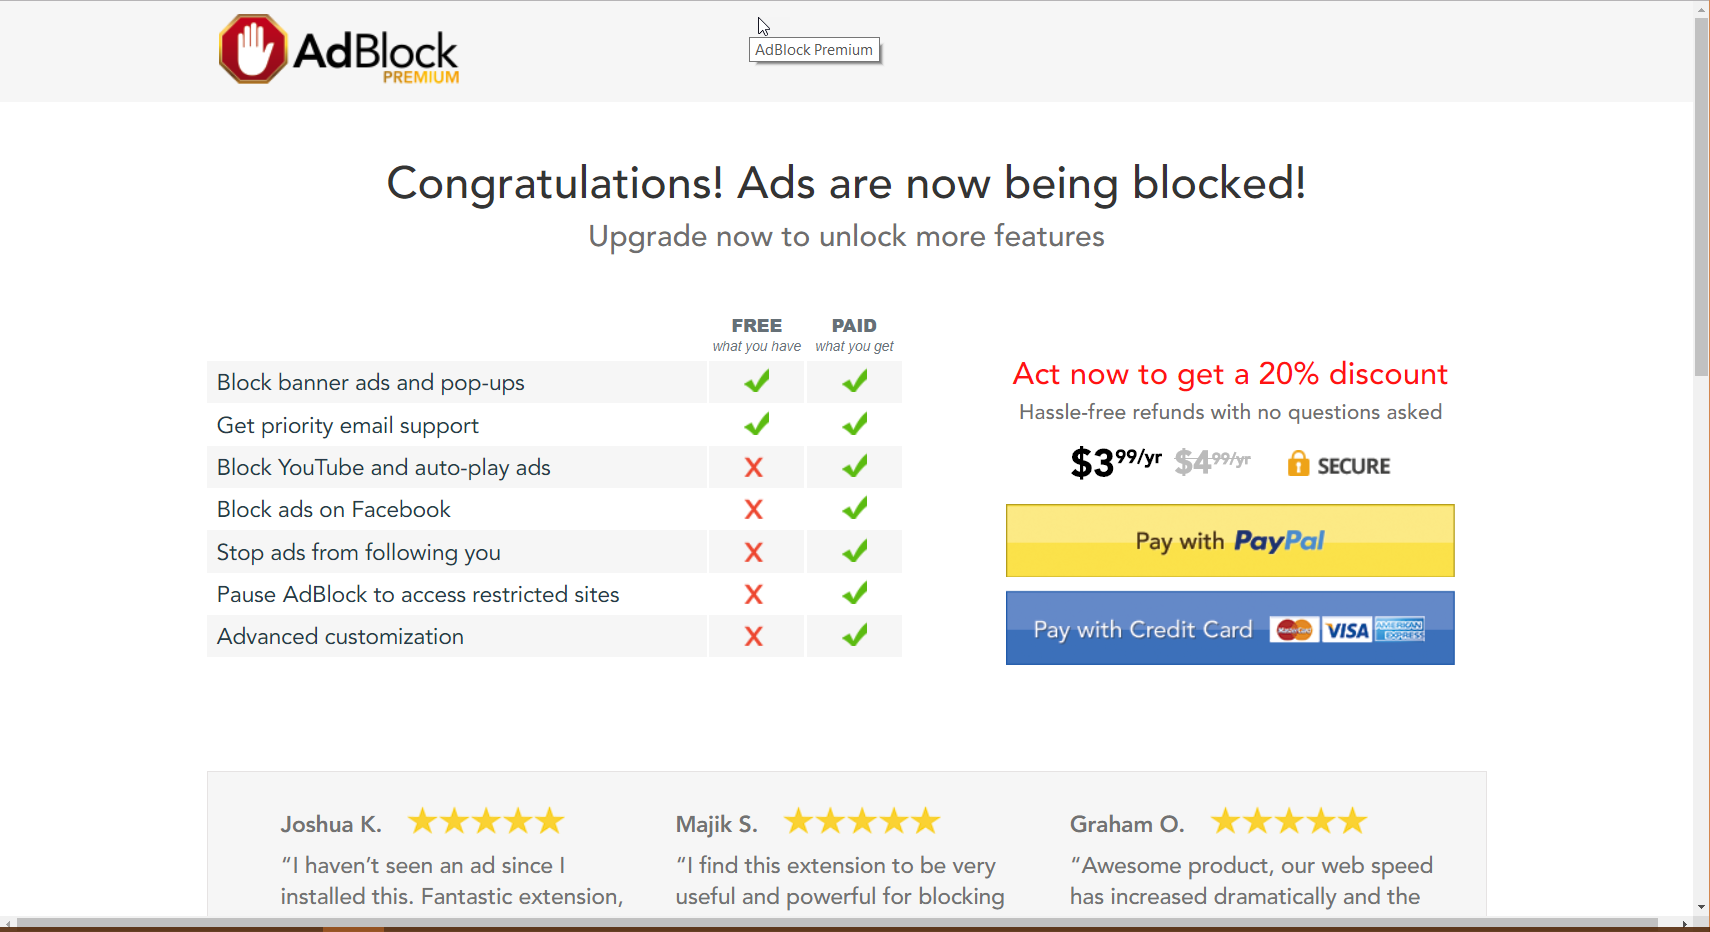 Paying for AdBlock Premium at the time of installation